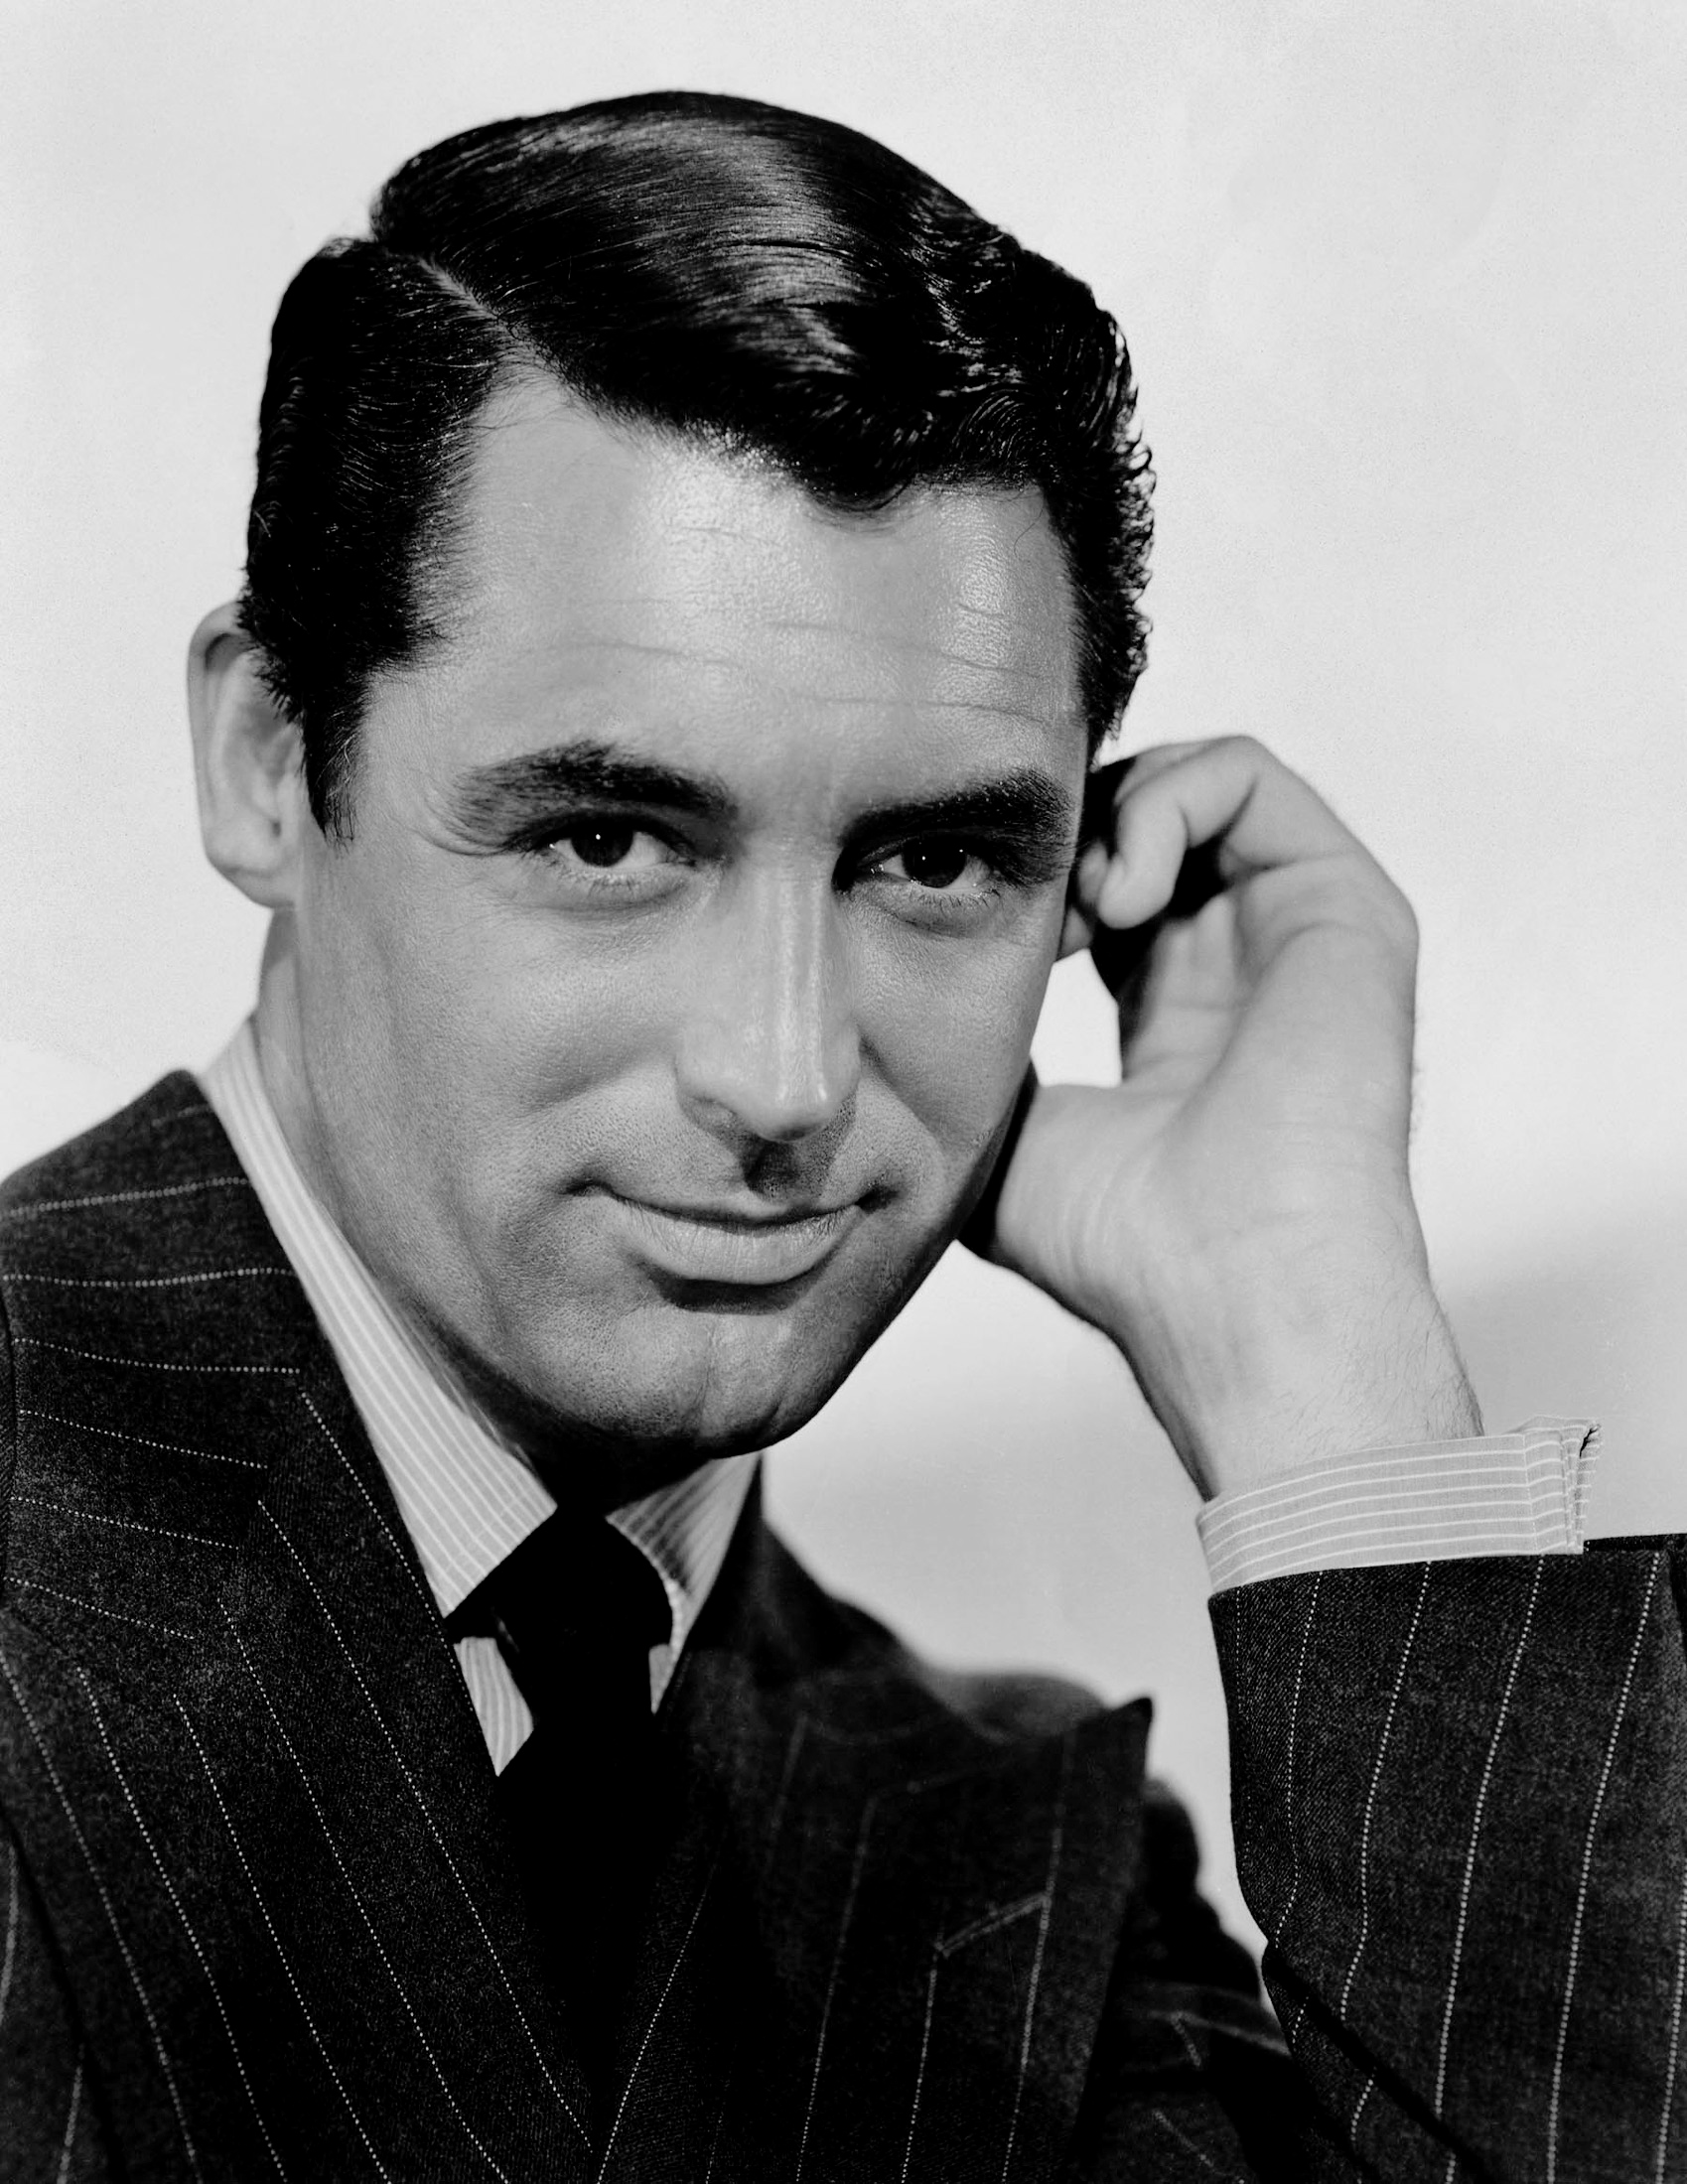 c14add4f0b3 Cary Grant - Wikipedia